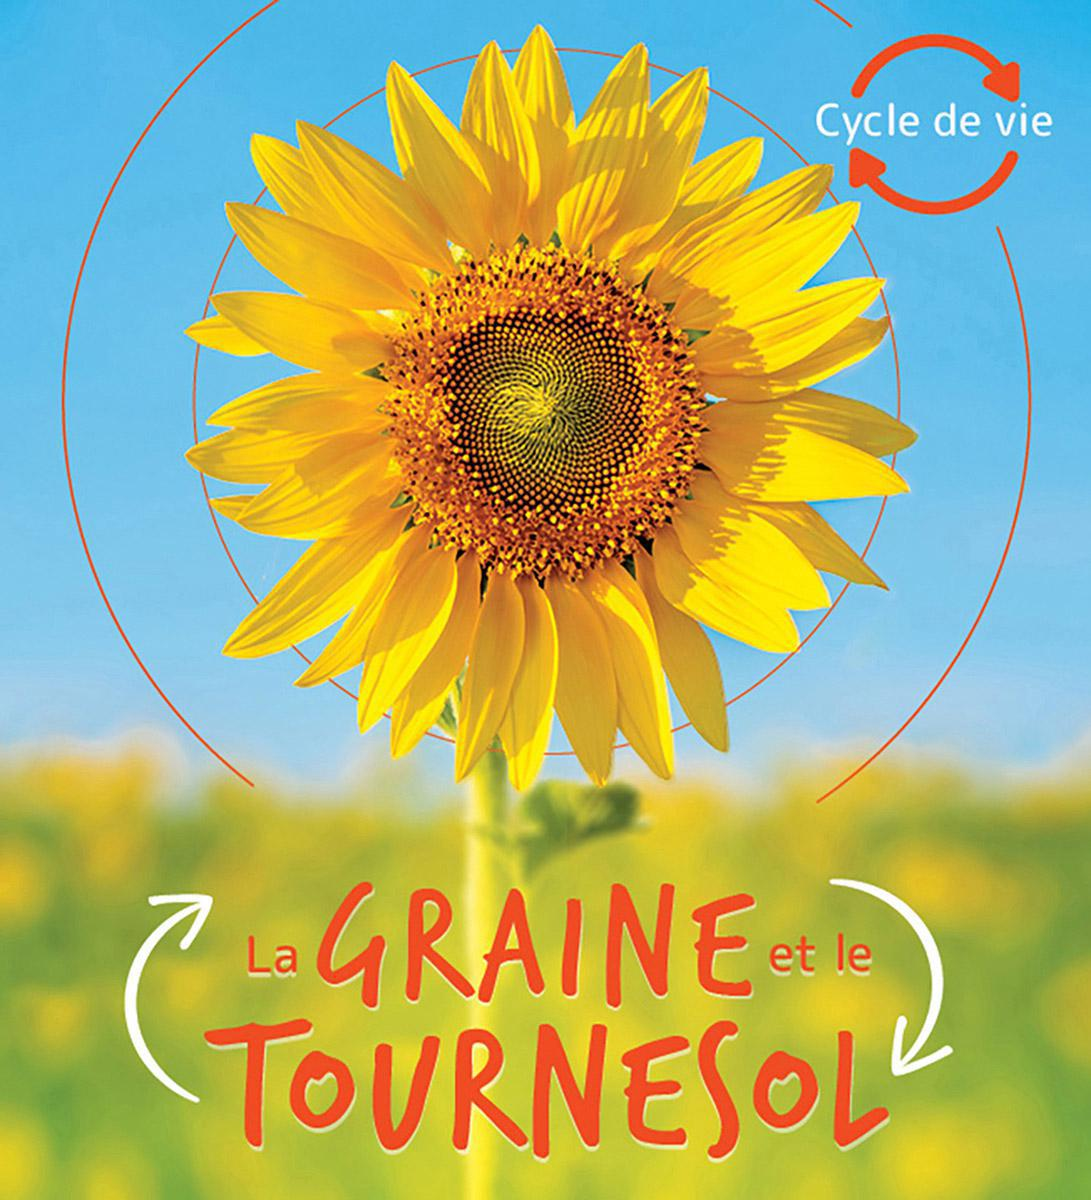 Cycle de vie : La graine et le tournesol